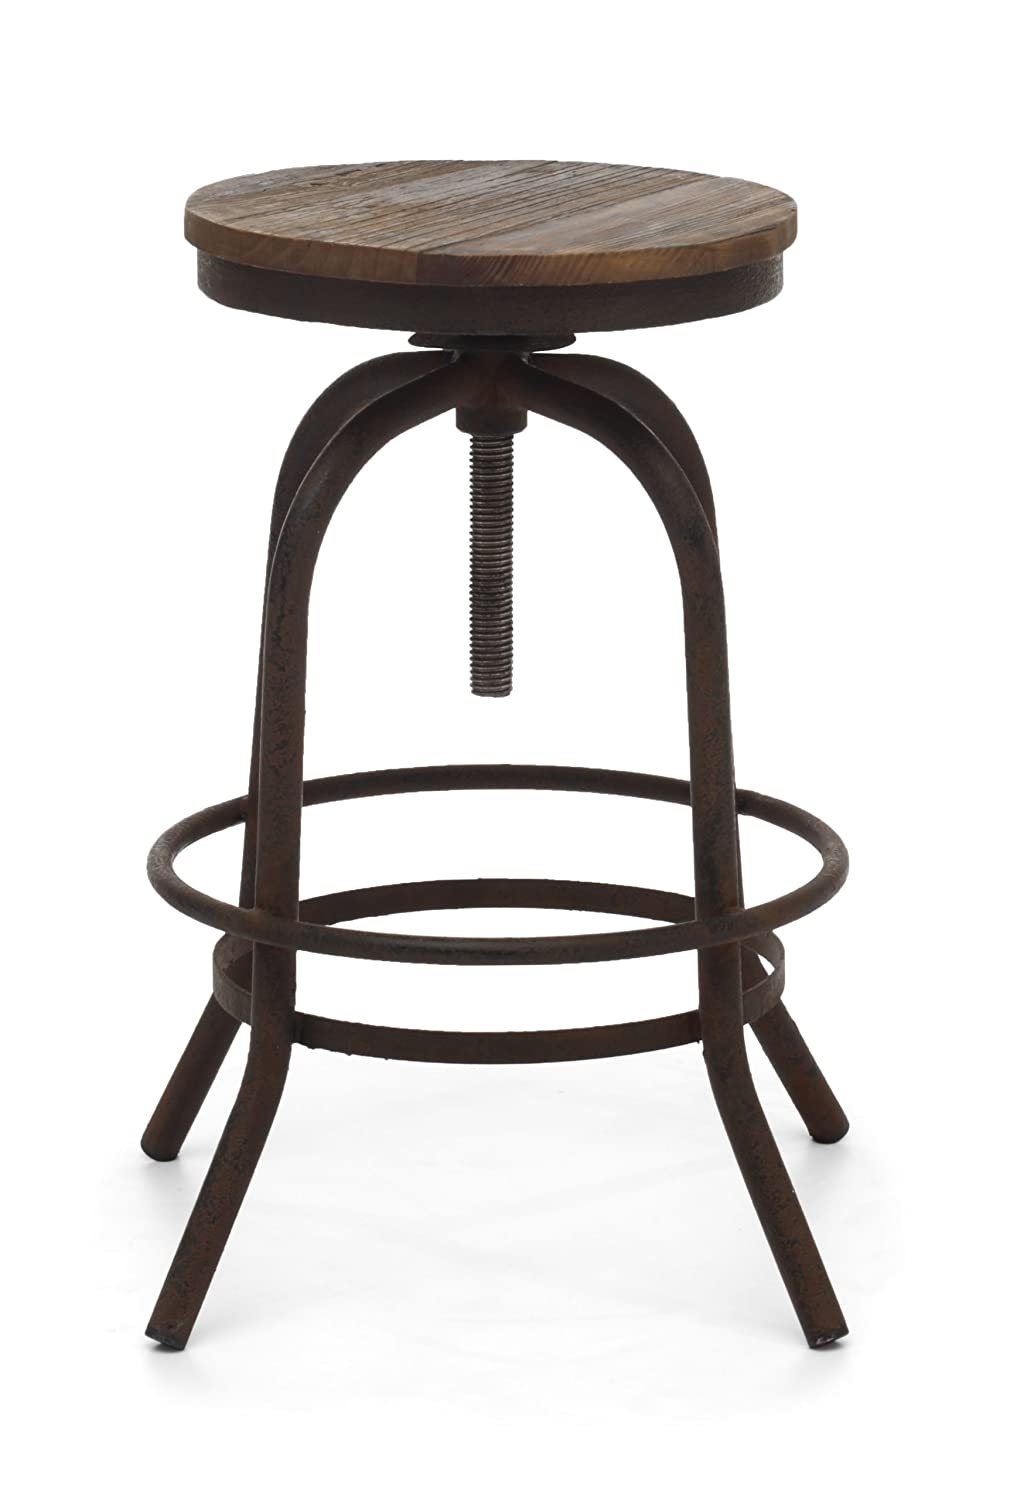 Amazon.com Zuo Modern Twin Peaks Counter Stool Distressed Natural Kitchen u0026 Dining  sc 1 st  Amazon.com & Amazon.com: Zuo Modern Twin Peaks Counter Stool Distressed ... islam-shia.org